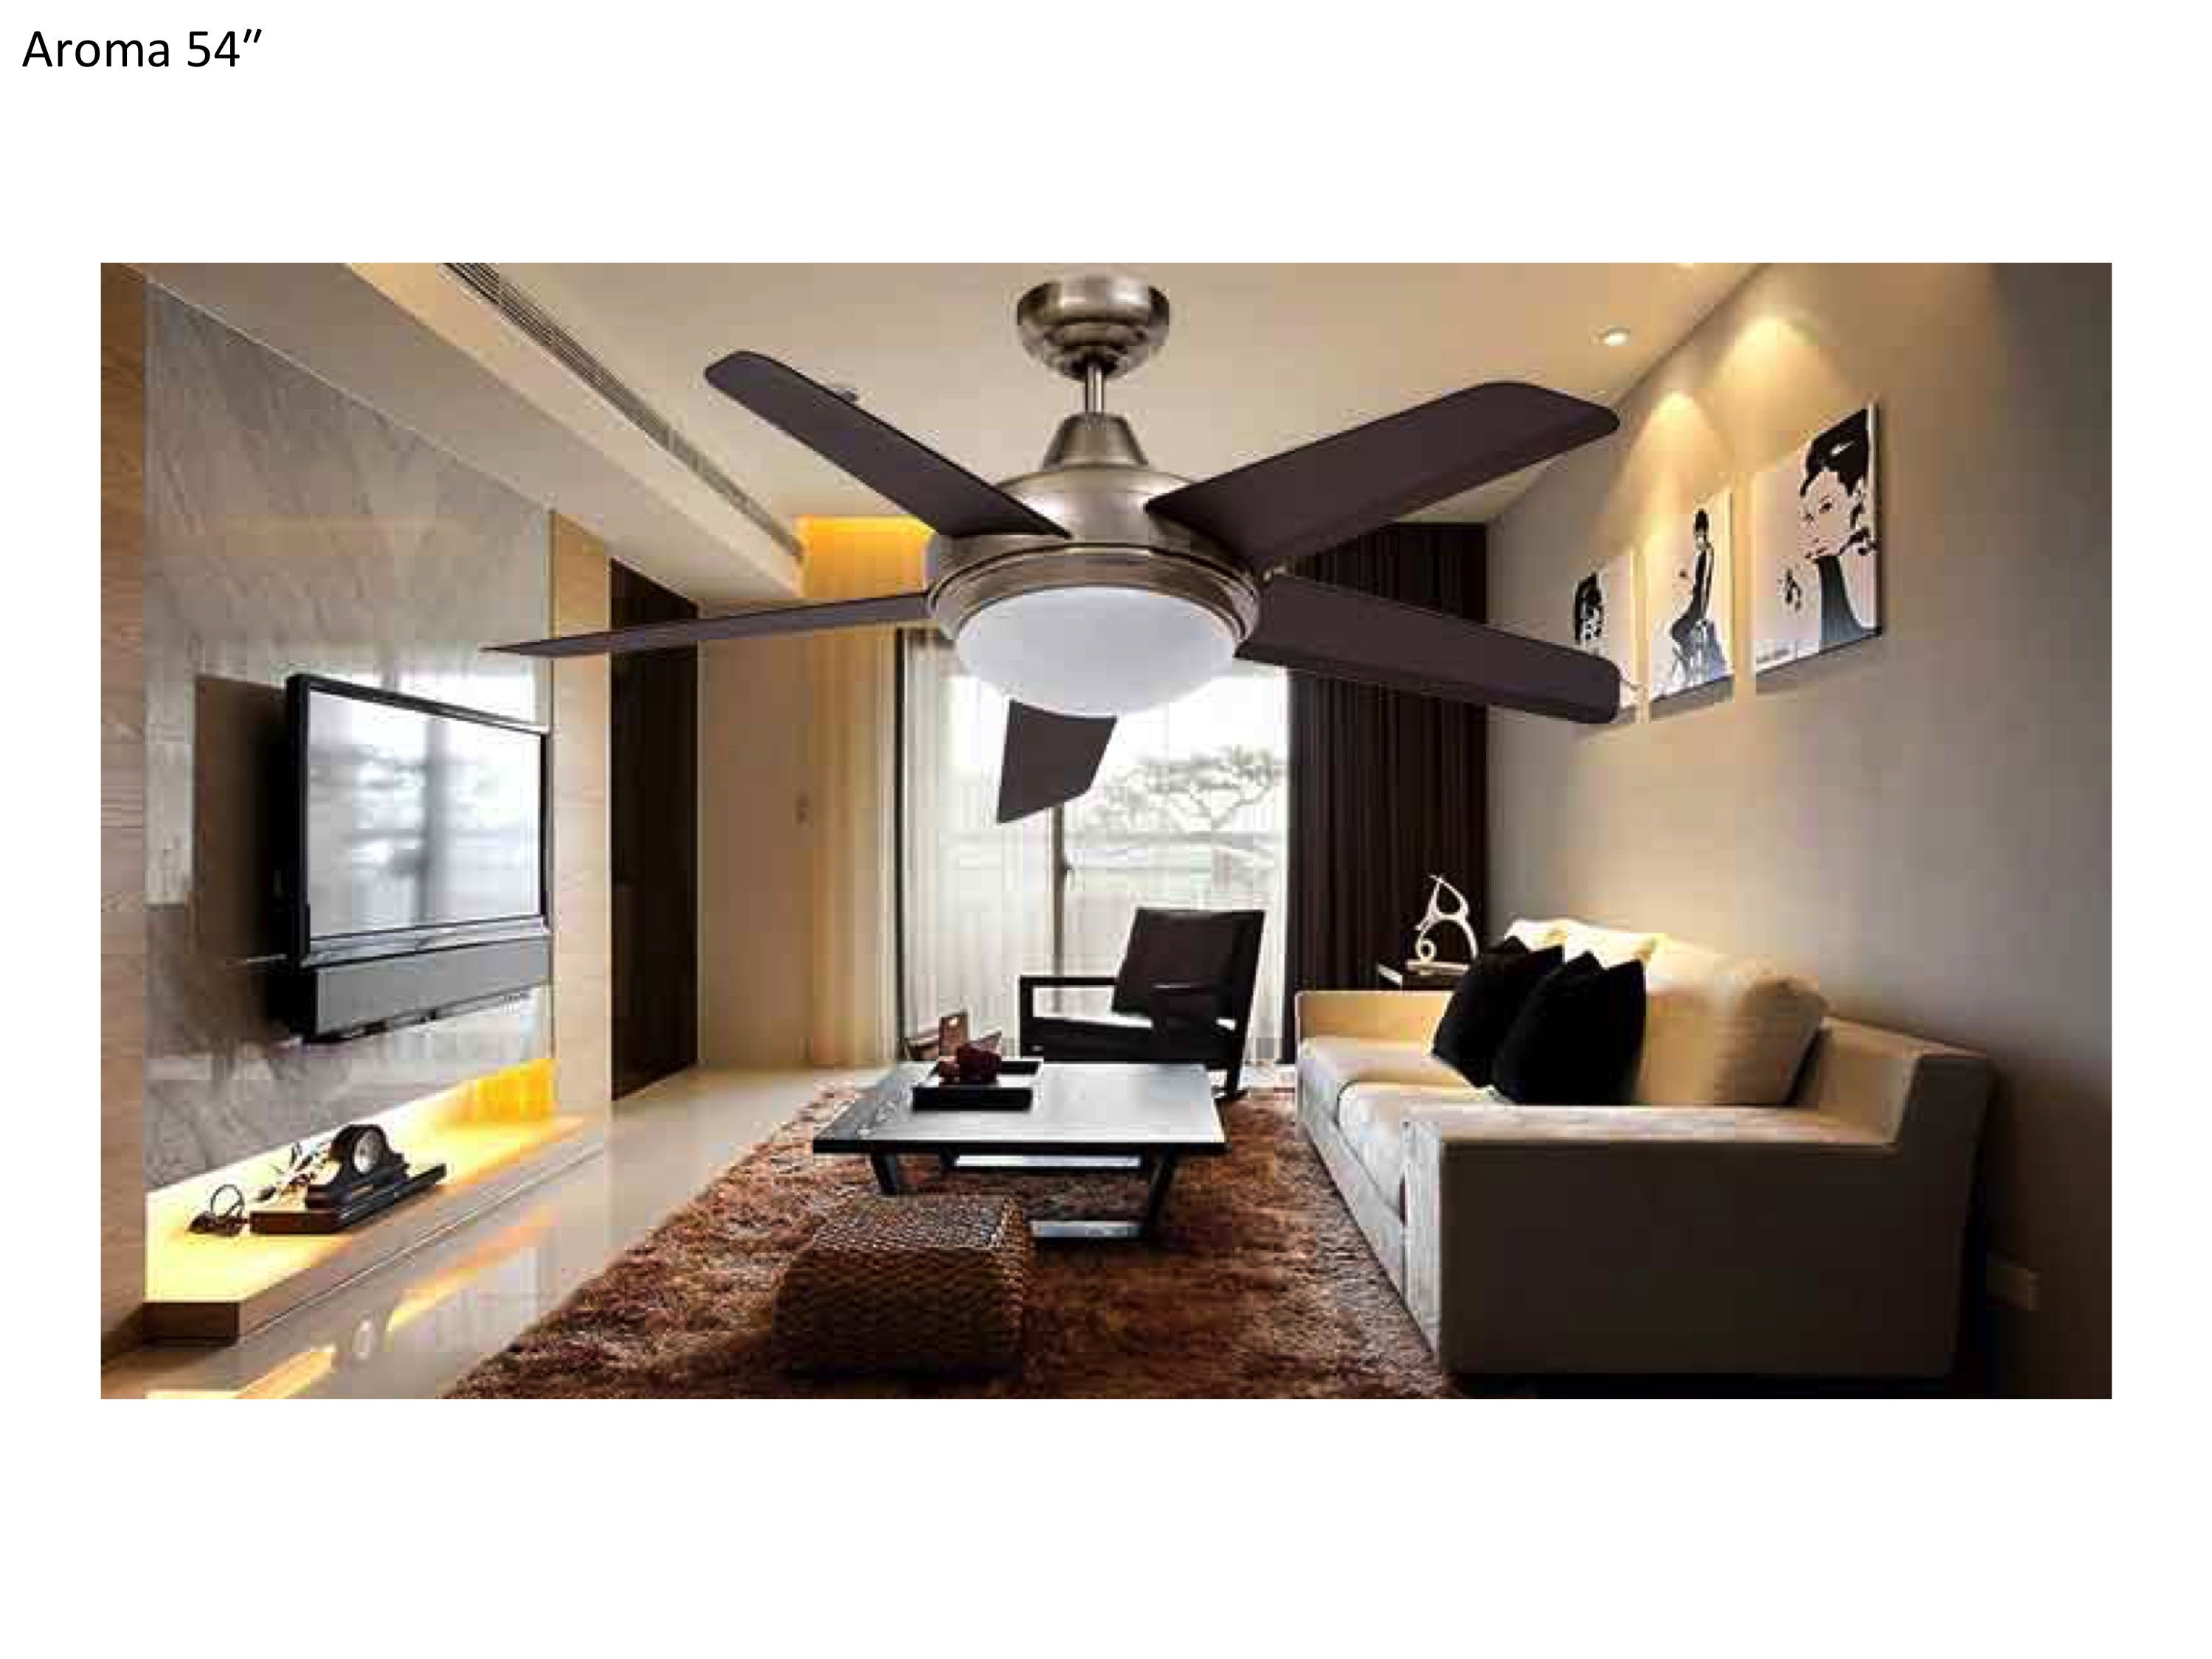 false paint photos rooms valance large interior for hang livings room home beige as ceiling high designs over ceilings design lighting iron fans ideas decor inspiration stunning fan on well living lights